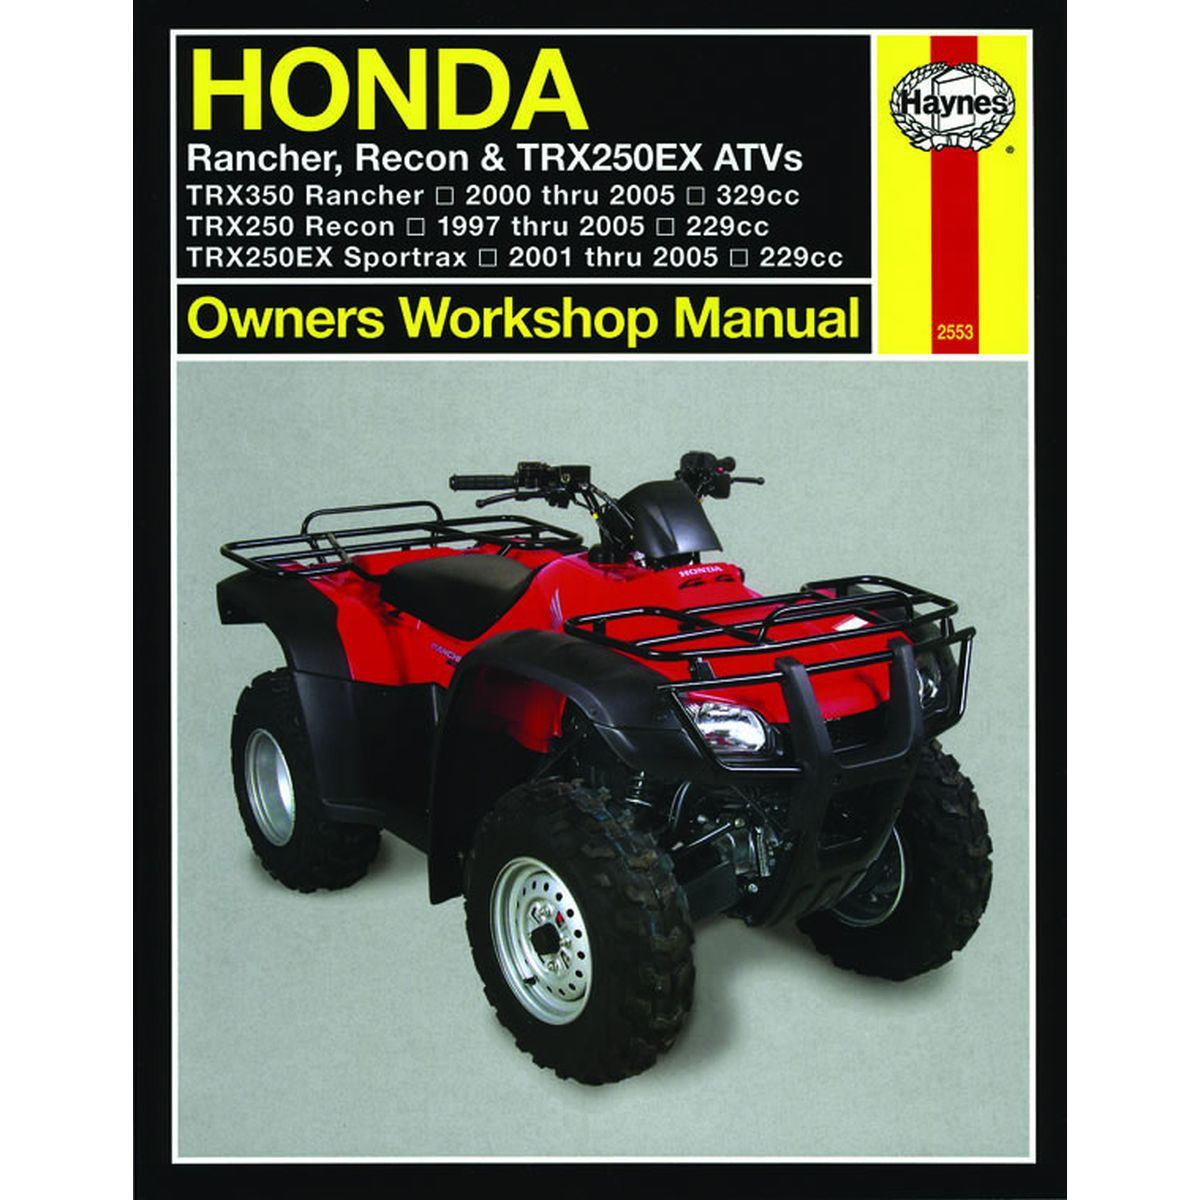 Honda 350 Engine Parts Diagram - Schematics Wiring Diagrams •